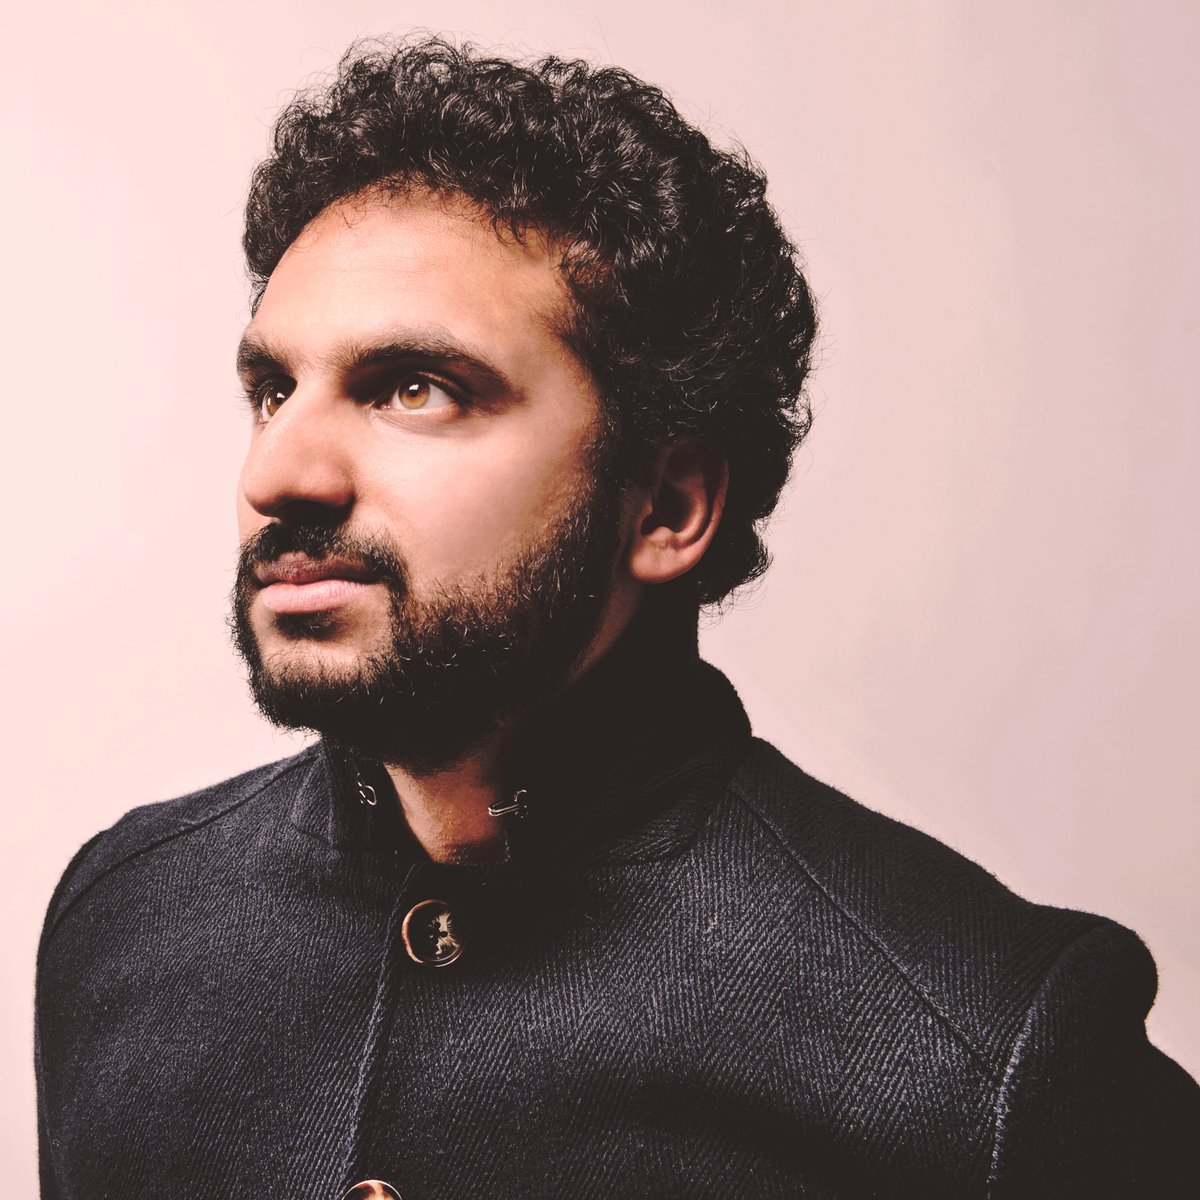 TONIGHT! Very excited to welcome @MrNishKumar to #Dudley Town Hall with his latest show, 'It's in Your Nature to Destroy Yourselves'. Support from @sarabarron. Only a few tickets left 👉 http://boroughhalls.co.uk/nish-kumar.html